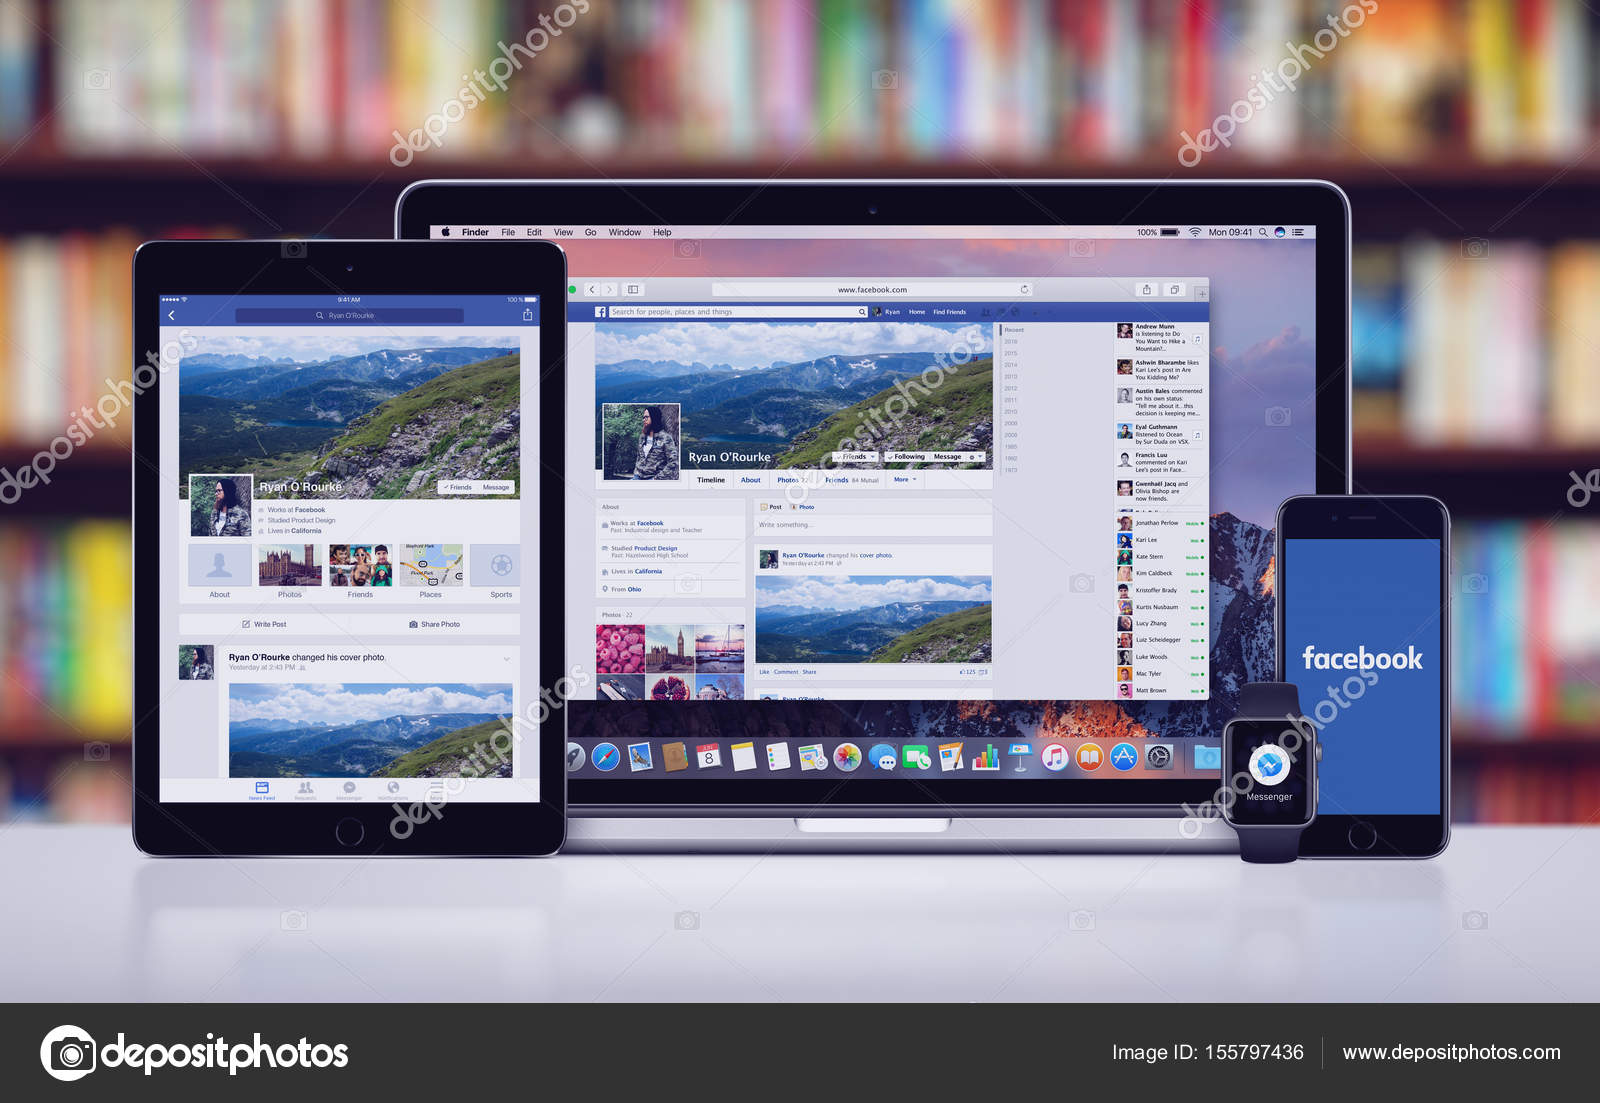 Macbook pro pic | Facebook on the Apple iPhone 7 iPad Pro